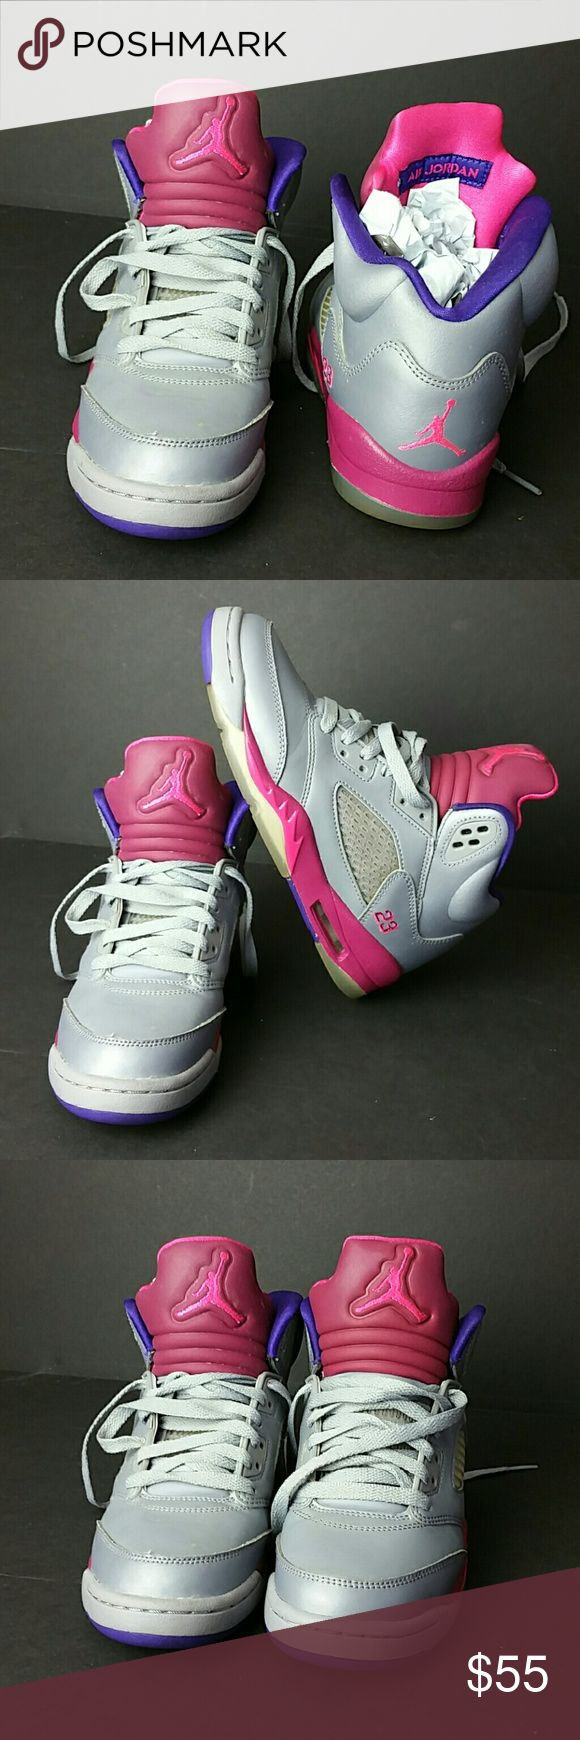 AIR JORDAN RETRO 5 YOUTH SHOES VERY CLEAN INSIDE-OUT   YOUTH SIZE 4Y BIG KIDS   MISSING INSOLE   SKE # VP Air Jordan Shoes Sneakers